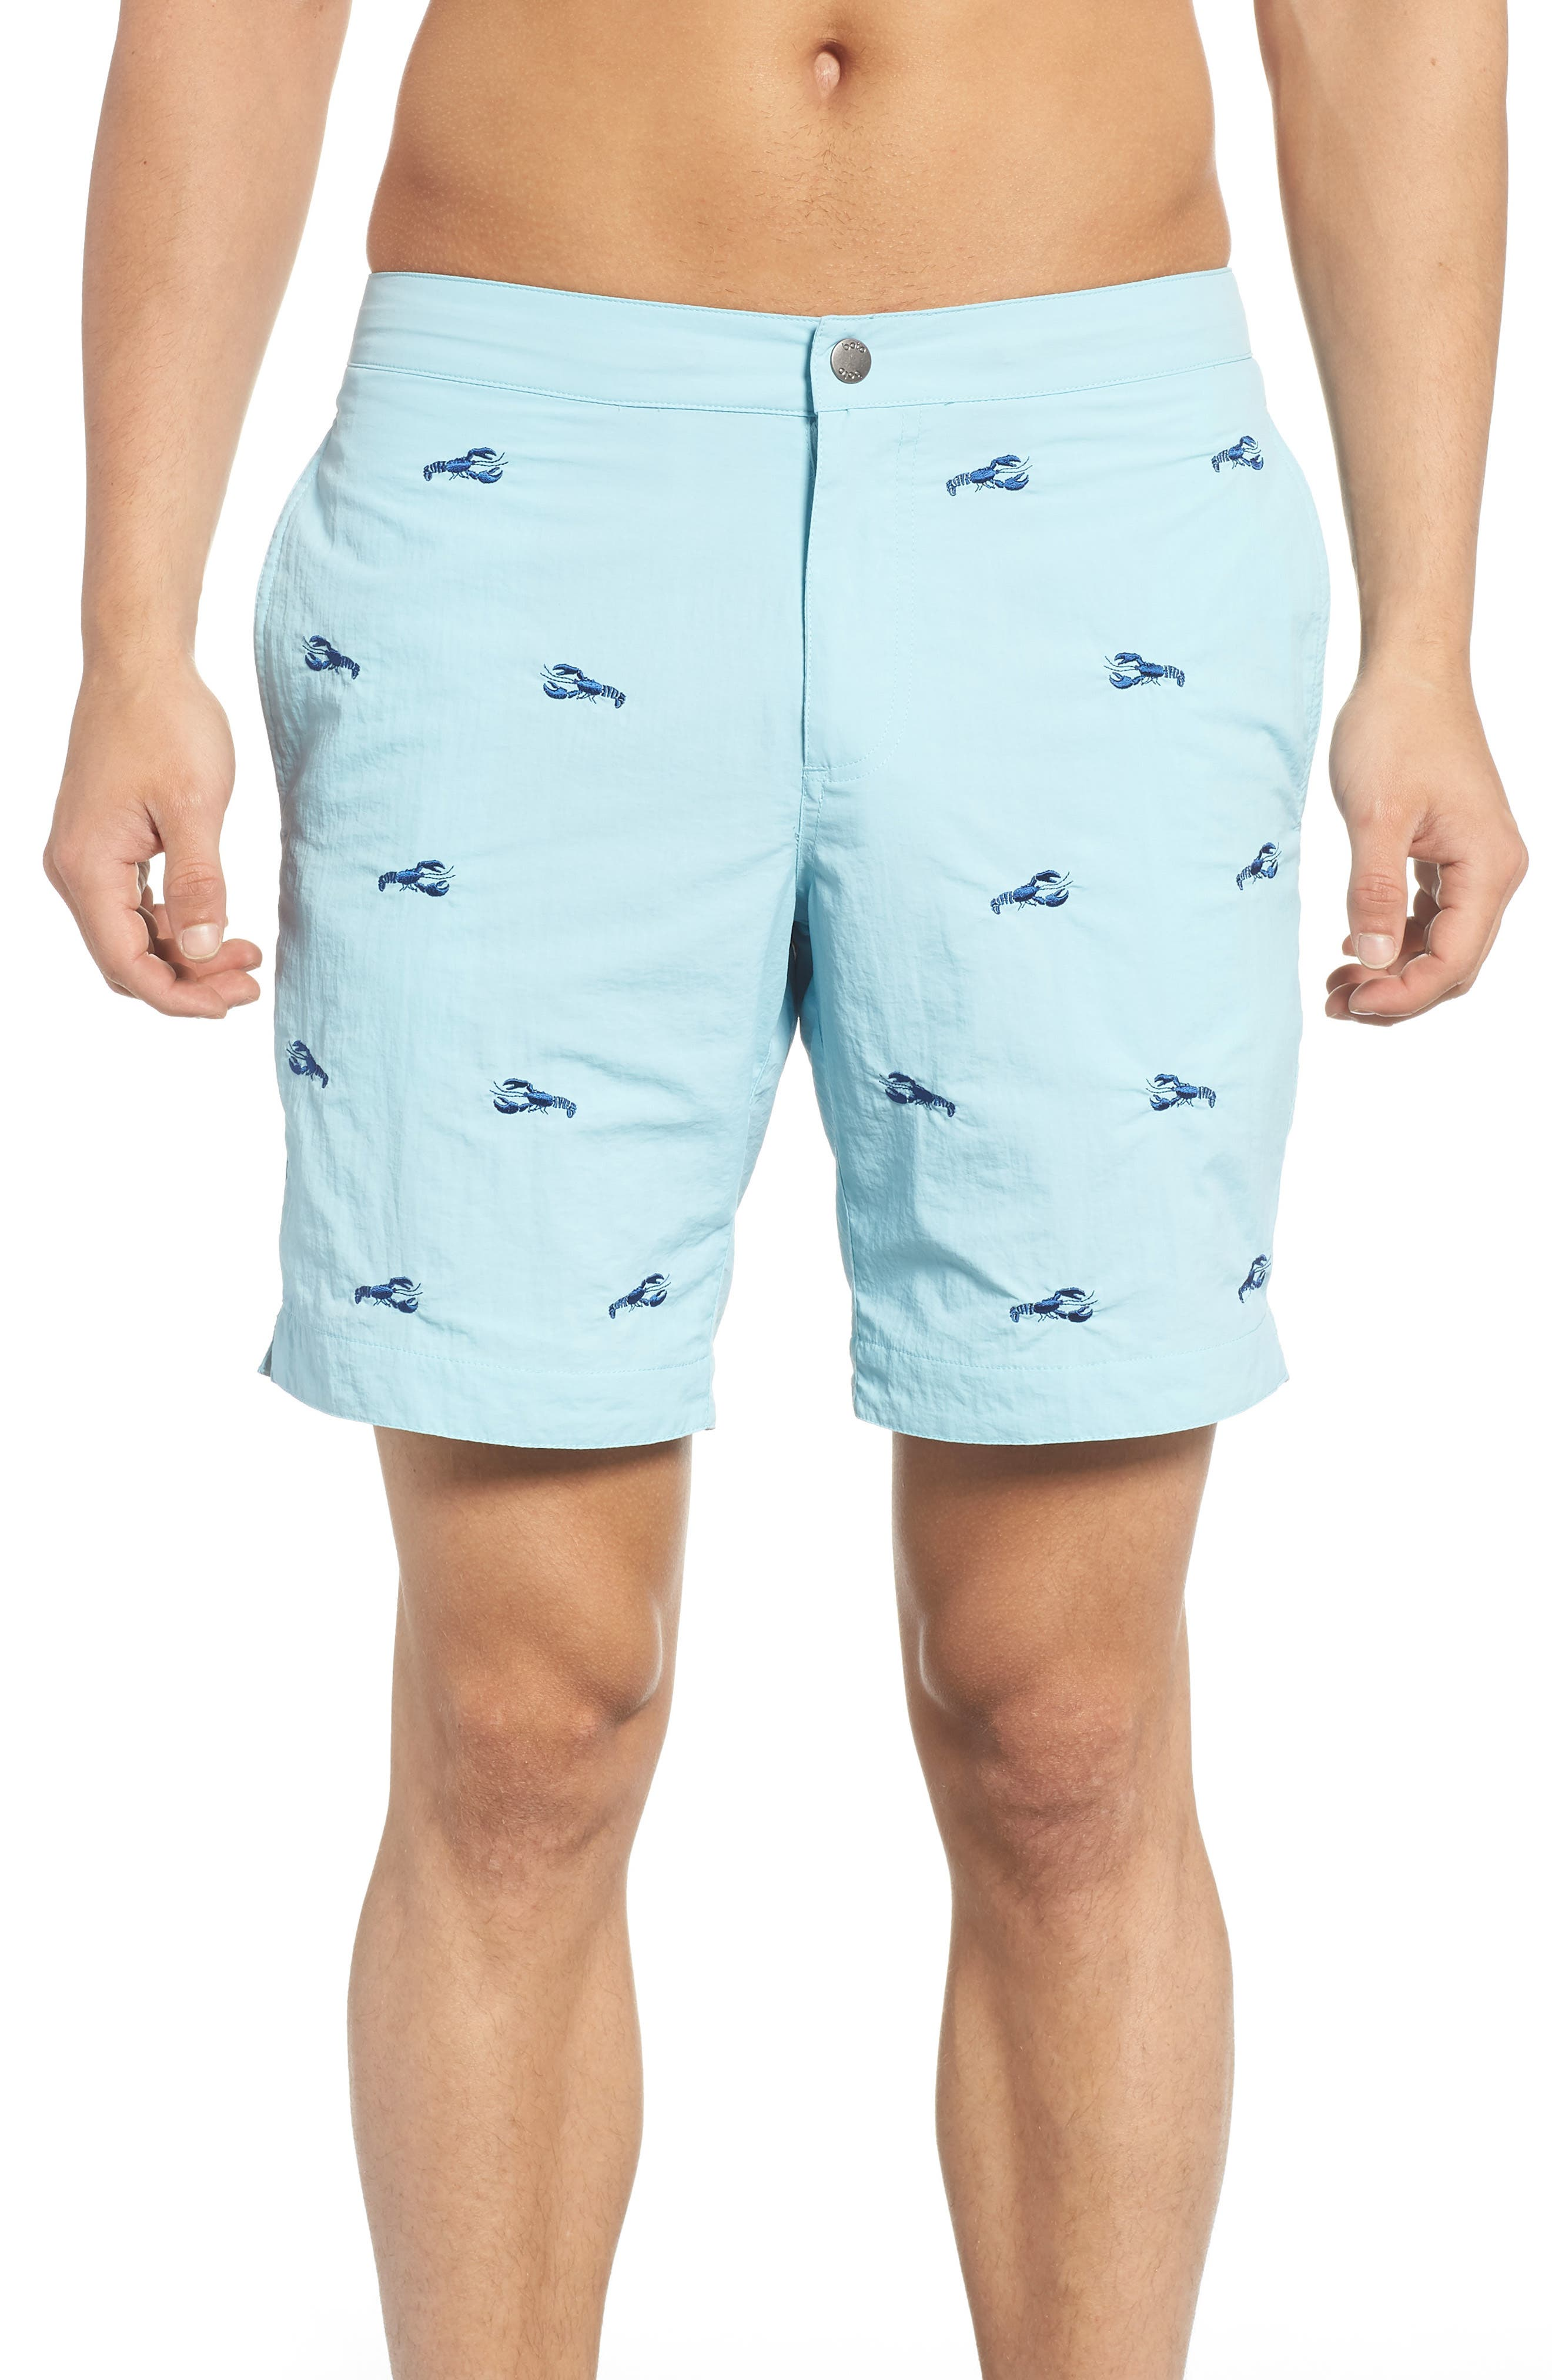 Aruba Embroidered Lobster Swim Trunks,                             Main thumbnail 1, color,                             Aqua Embroidered Lobsters